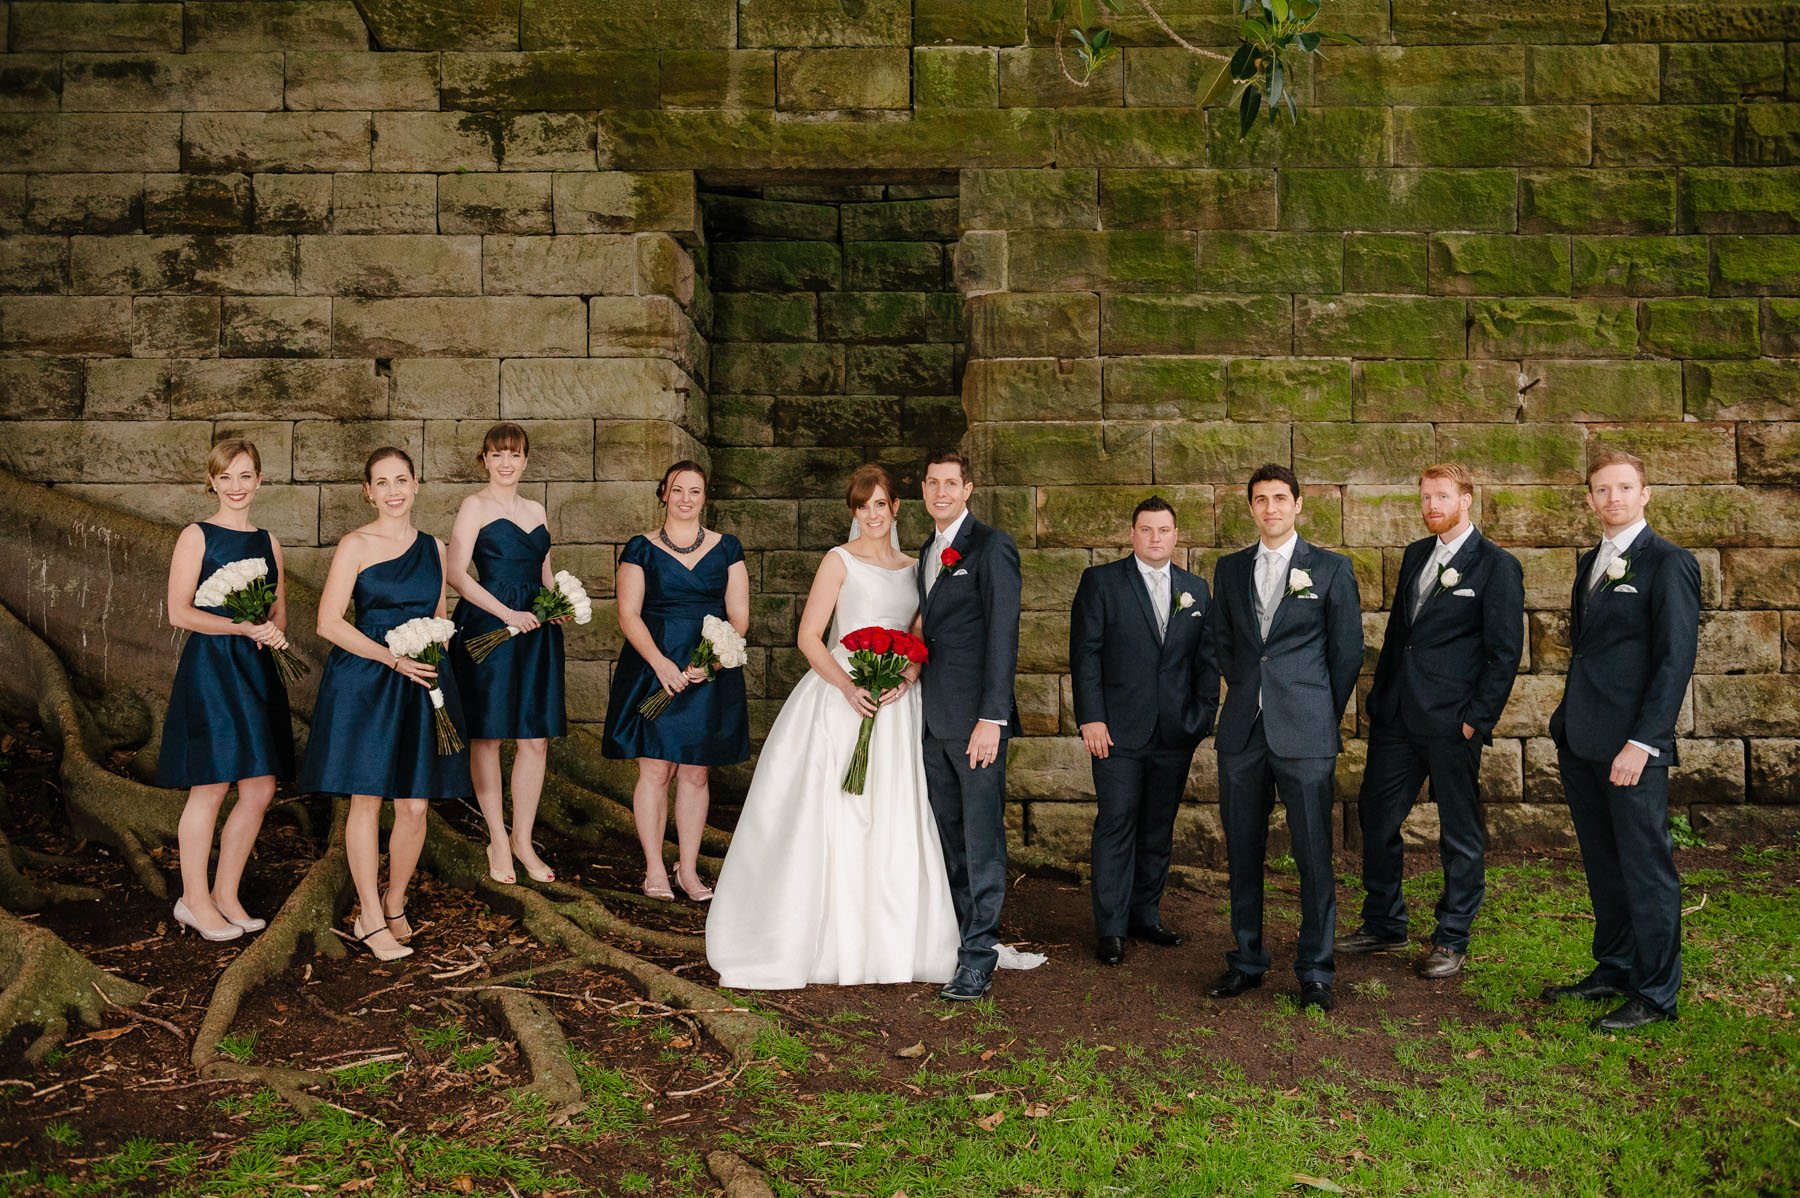 Marryme_wedding_photography_dorrigo_bellingen_photographer_19.jpg